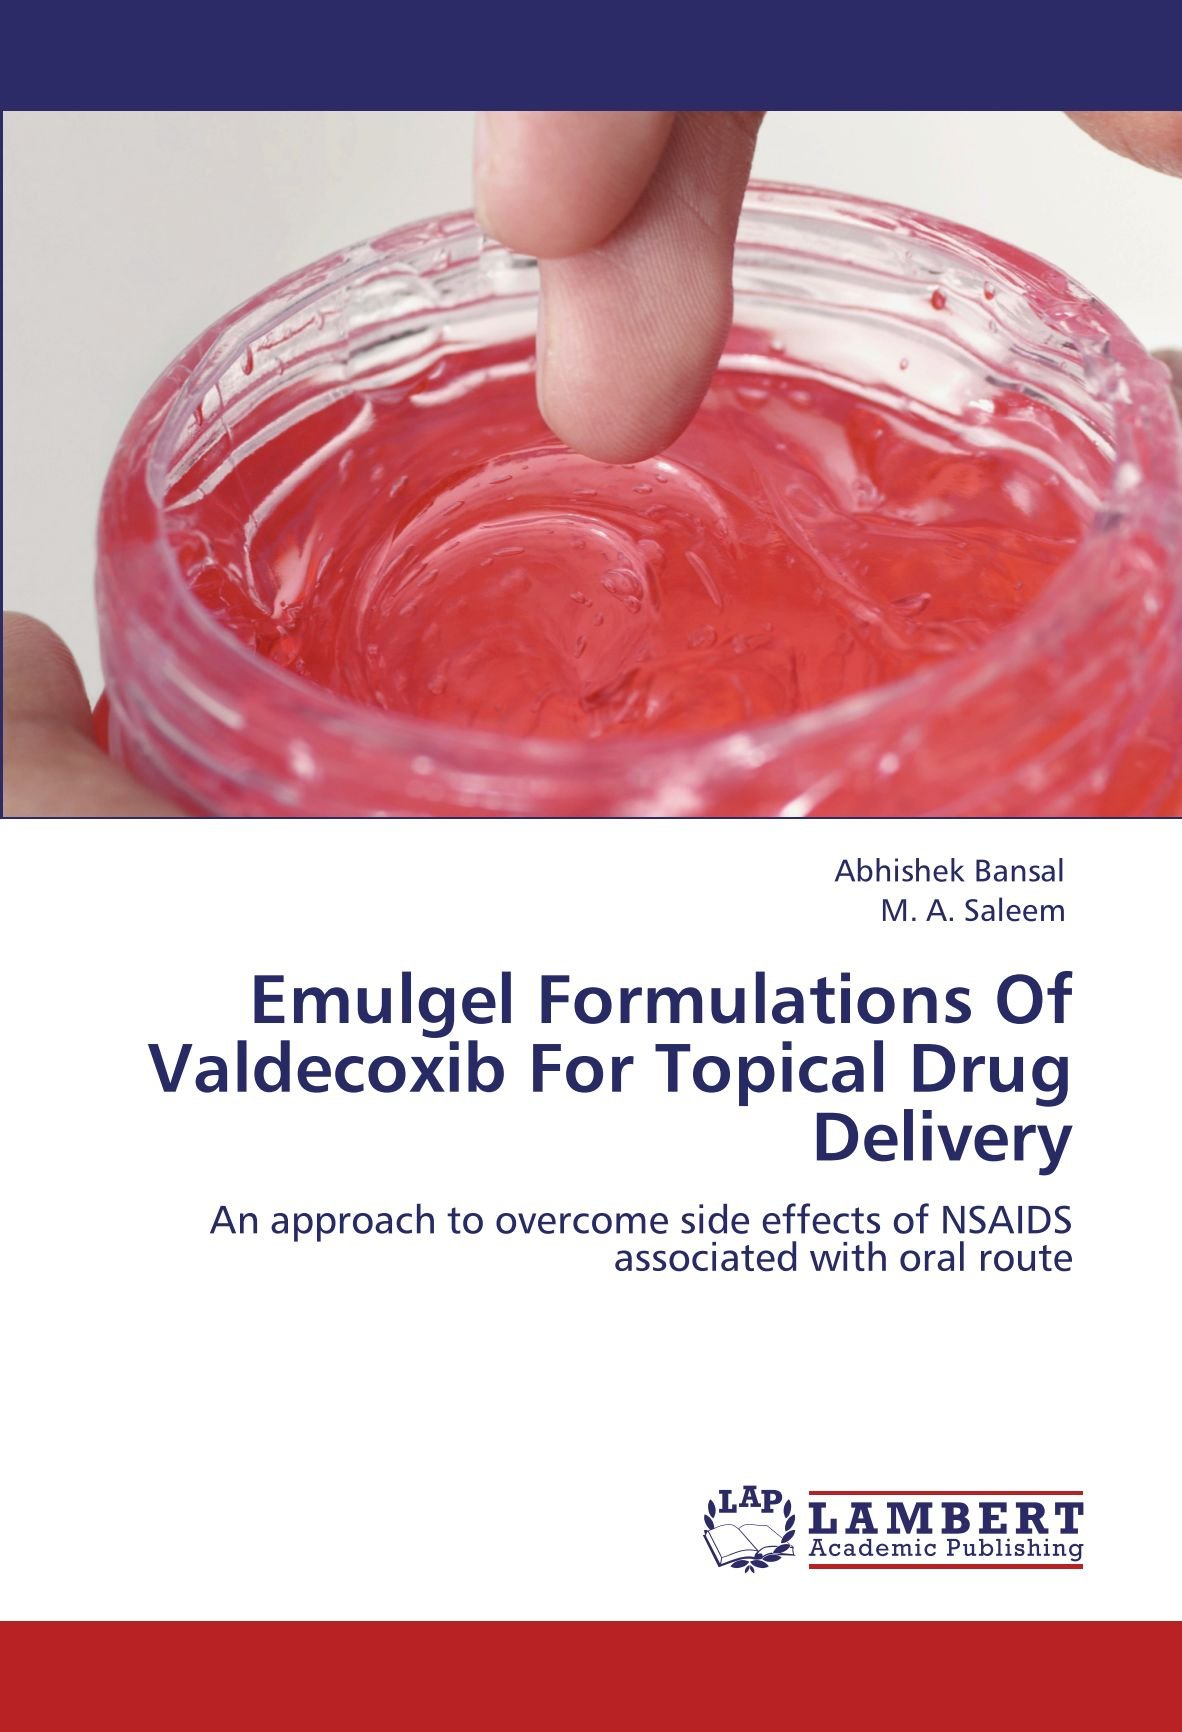 Emulgel Formulations Of Valdecoxib For Topical Drug Delivery: An approach  to overcome side effects of NSAIDS associated with oral route: Bansal,  Abhishek, Saleem, M. A.: 9783848445011: Amazon.com: Books